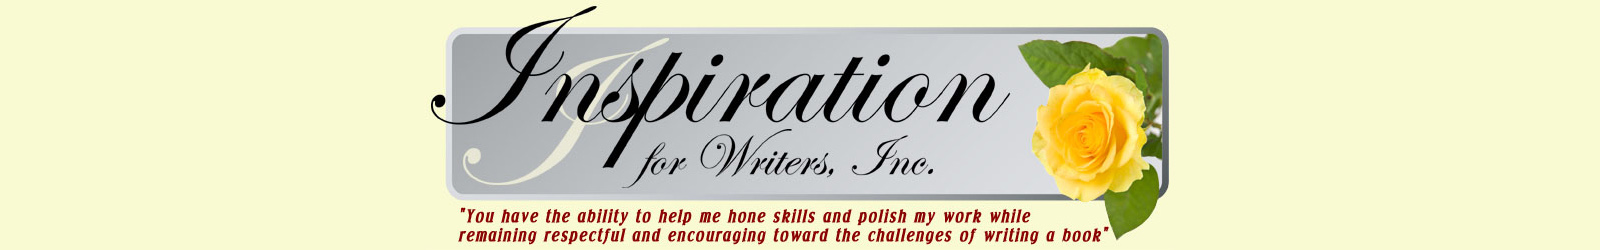 Ghostwriting Inspiration For Writers Inc